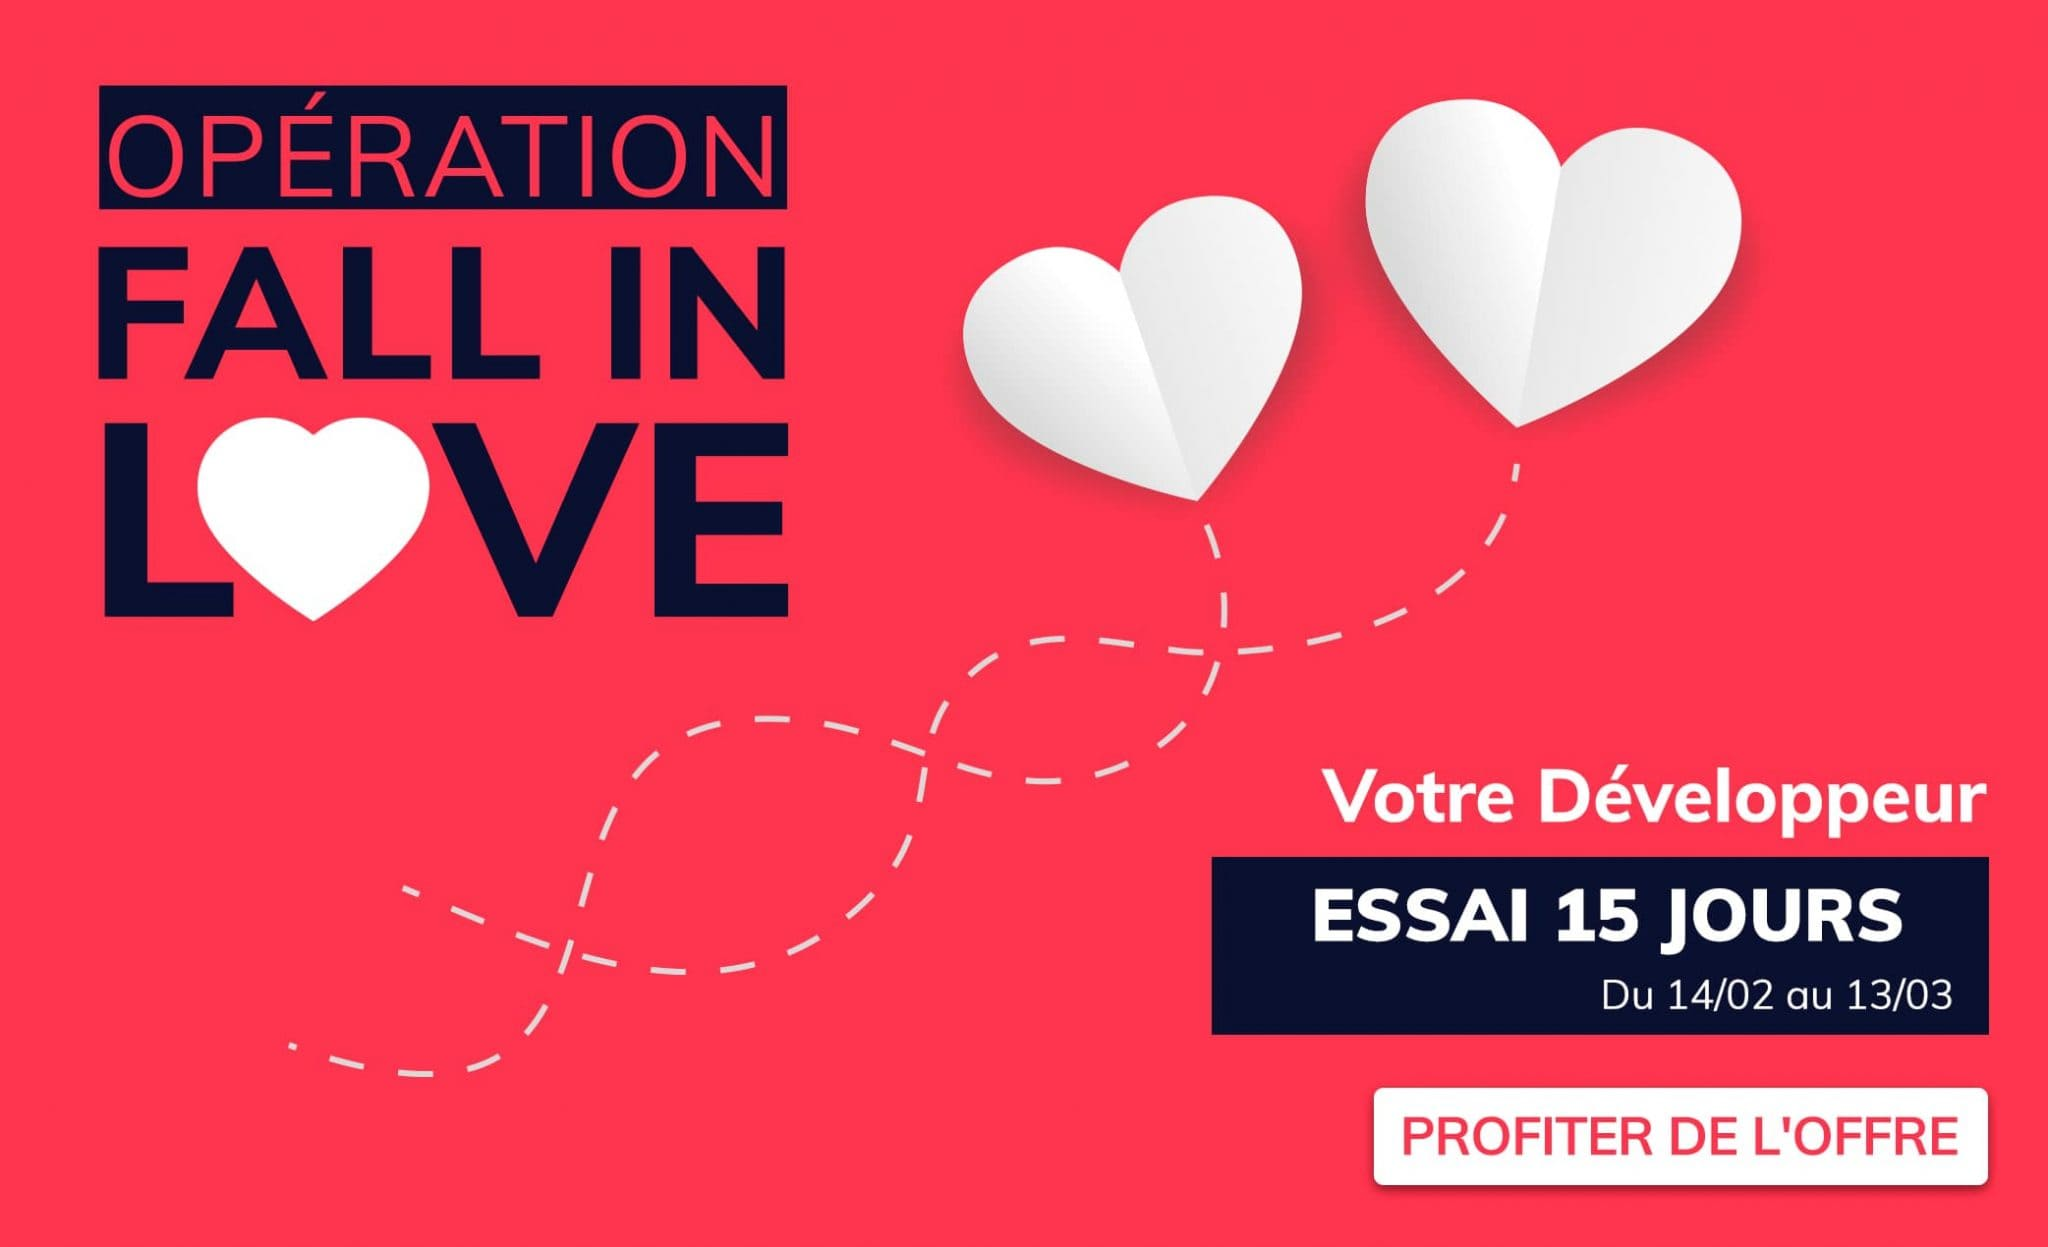 IT Outsourcing Informatique Promotion Valentine Horizontal min 1